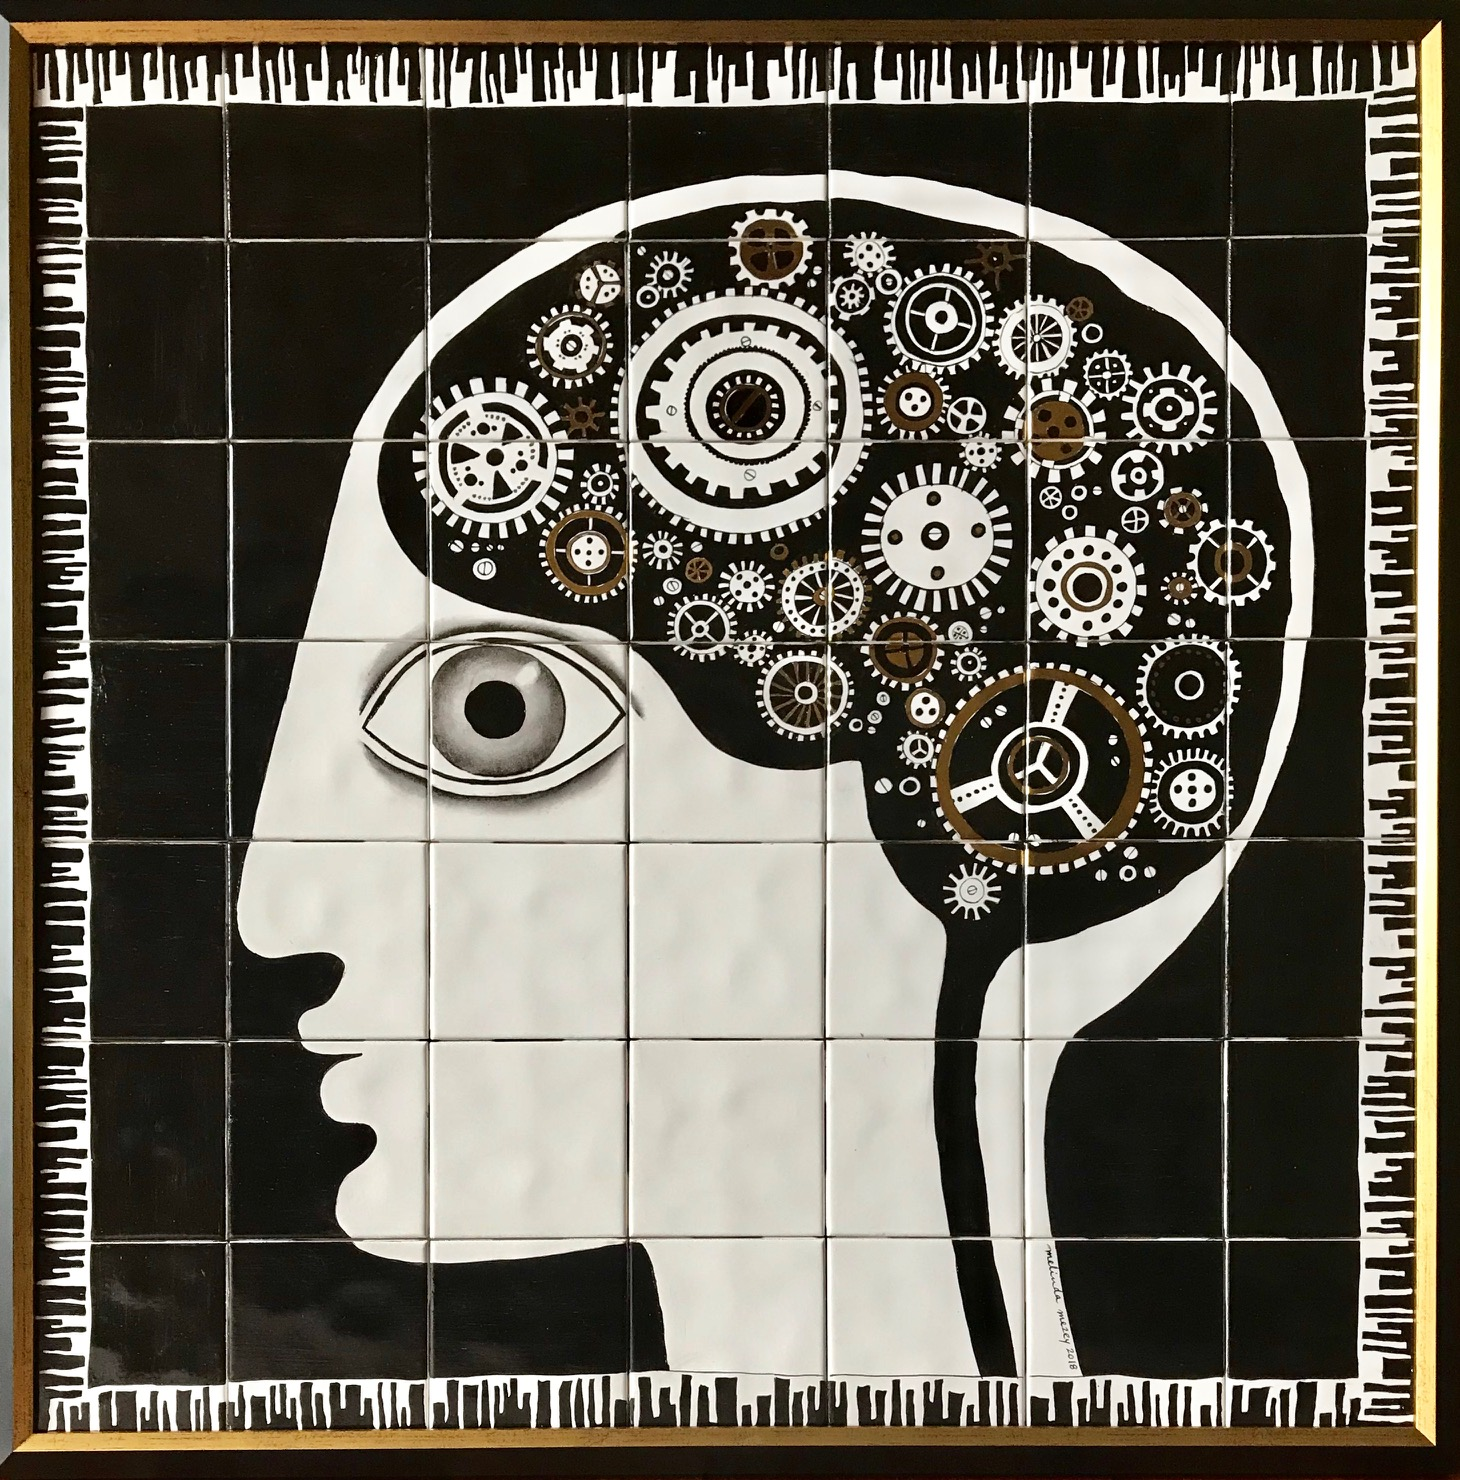 The Inventor's Brain  - 30 x 30 in, 76 x 76 cm